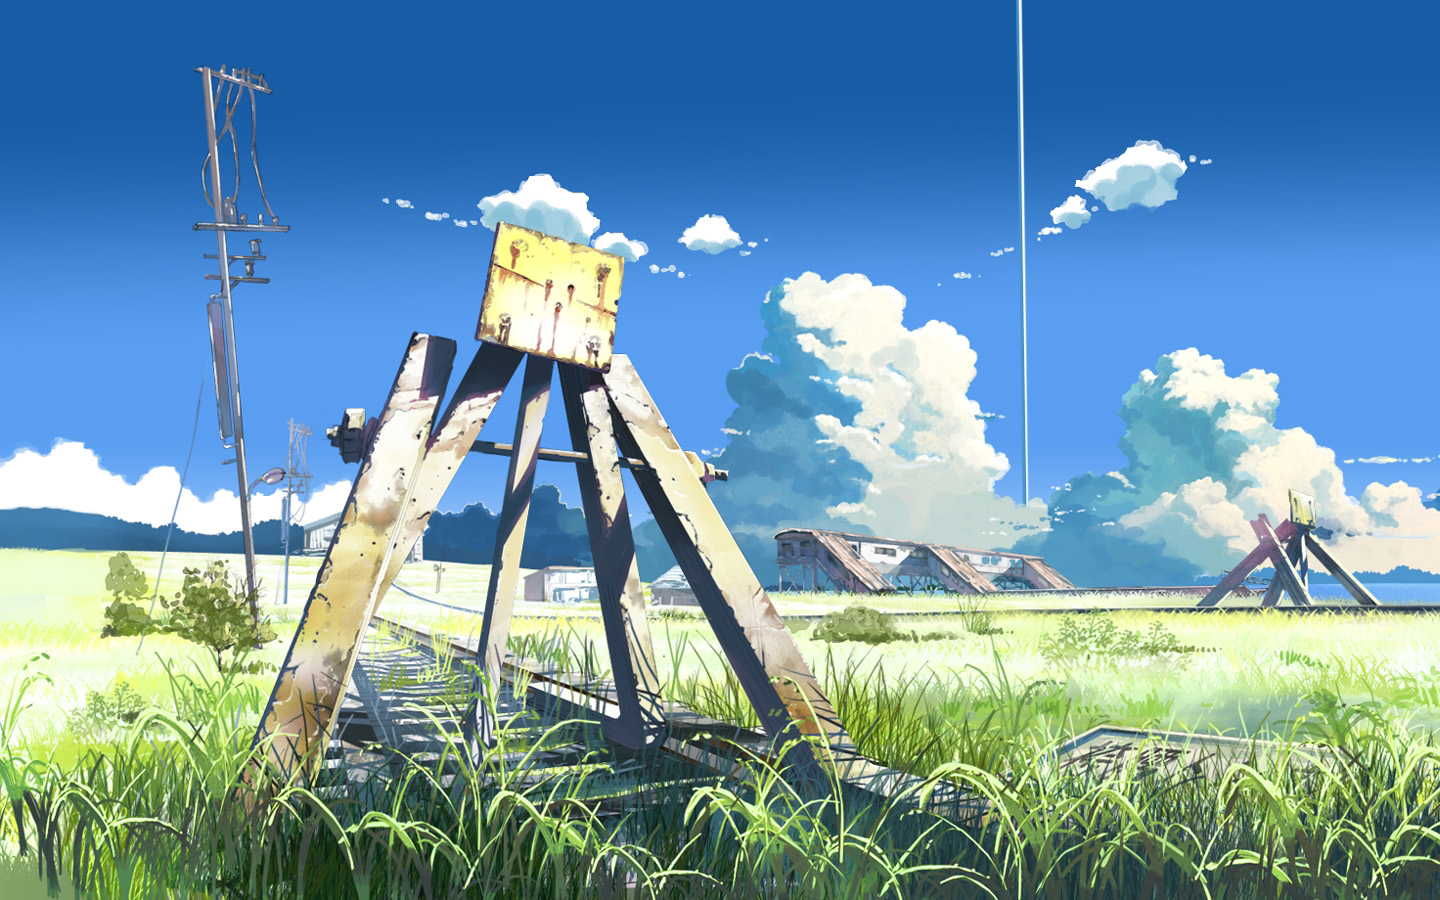 wallpaper depot 10 beautiful anime scenery wallpapers